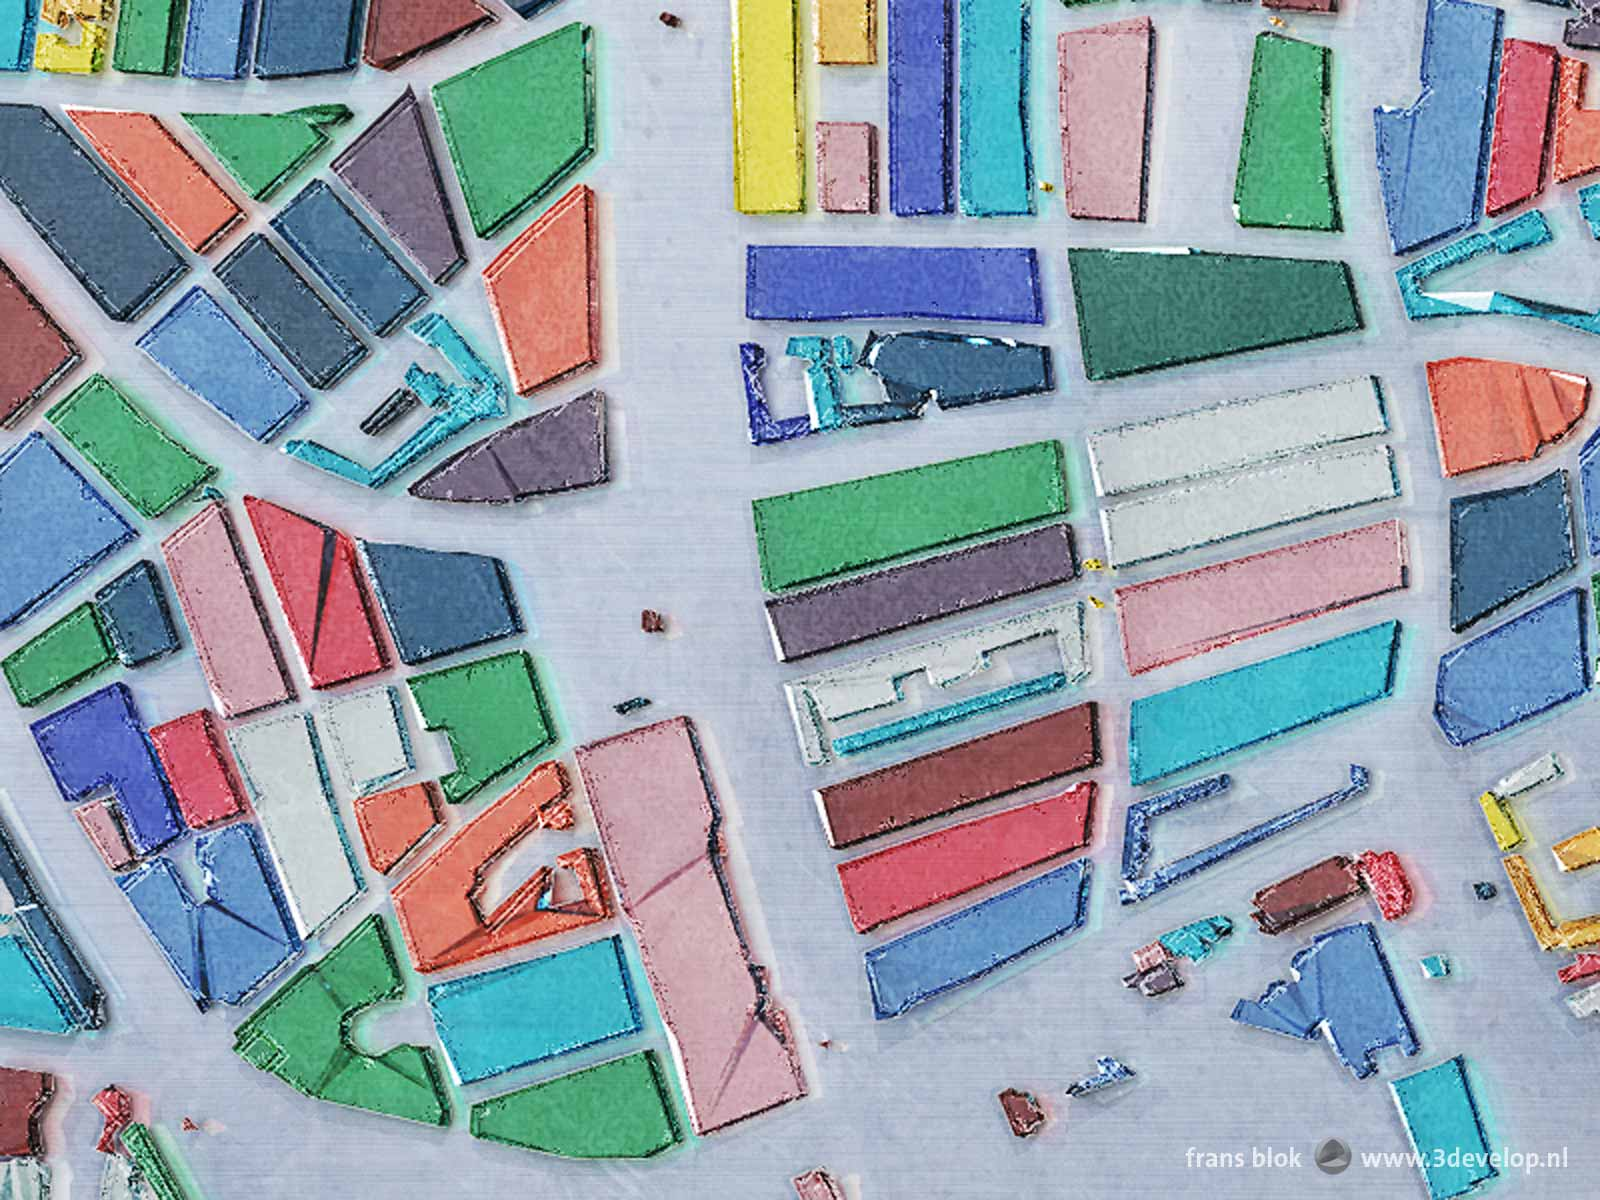 Fragment of the 15 colors glass map of Rotterdam, showing the area around Westersingel and 's-Gravendijkwal